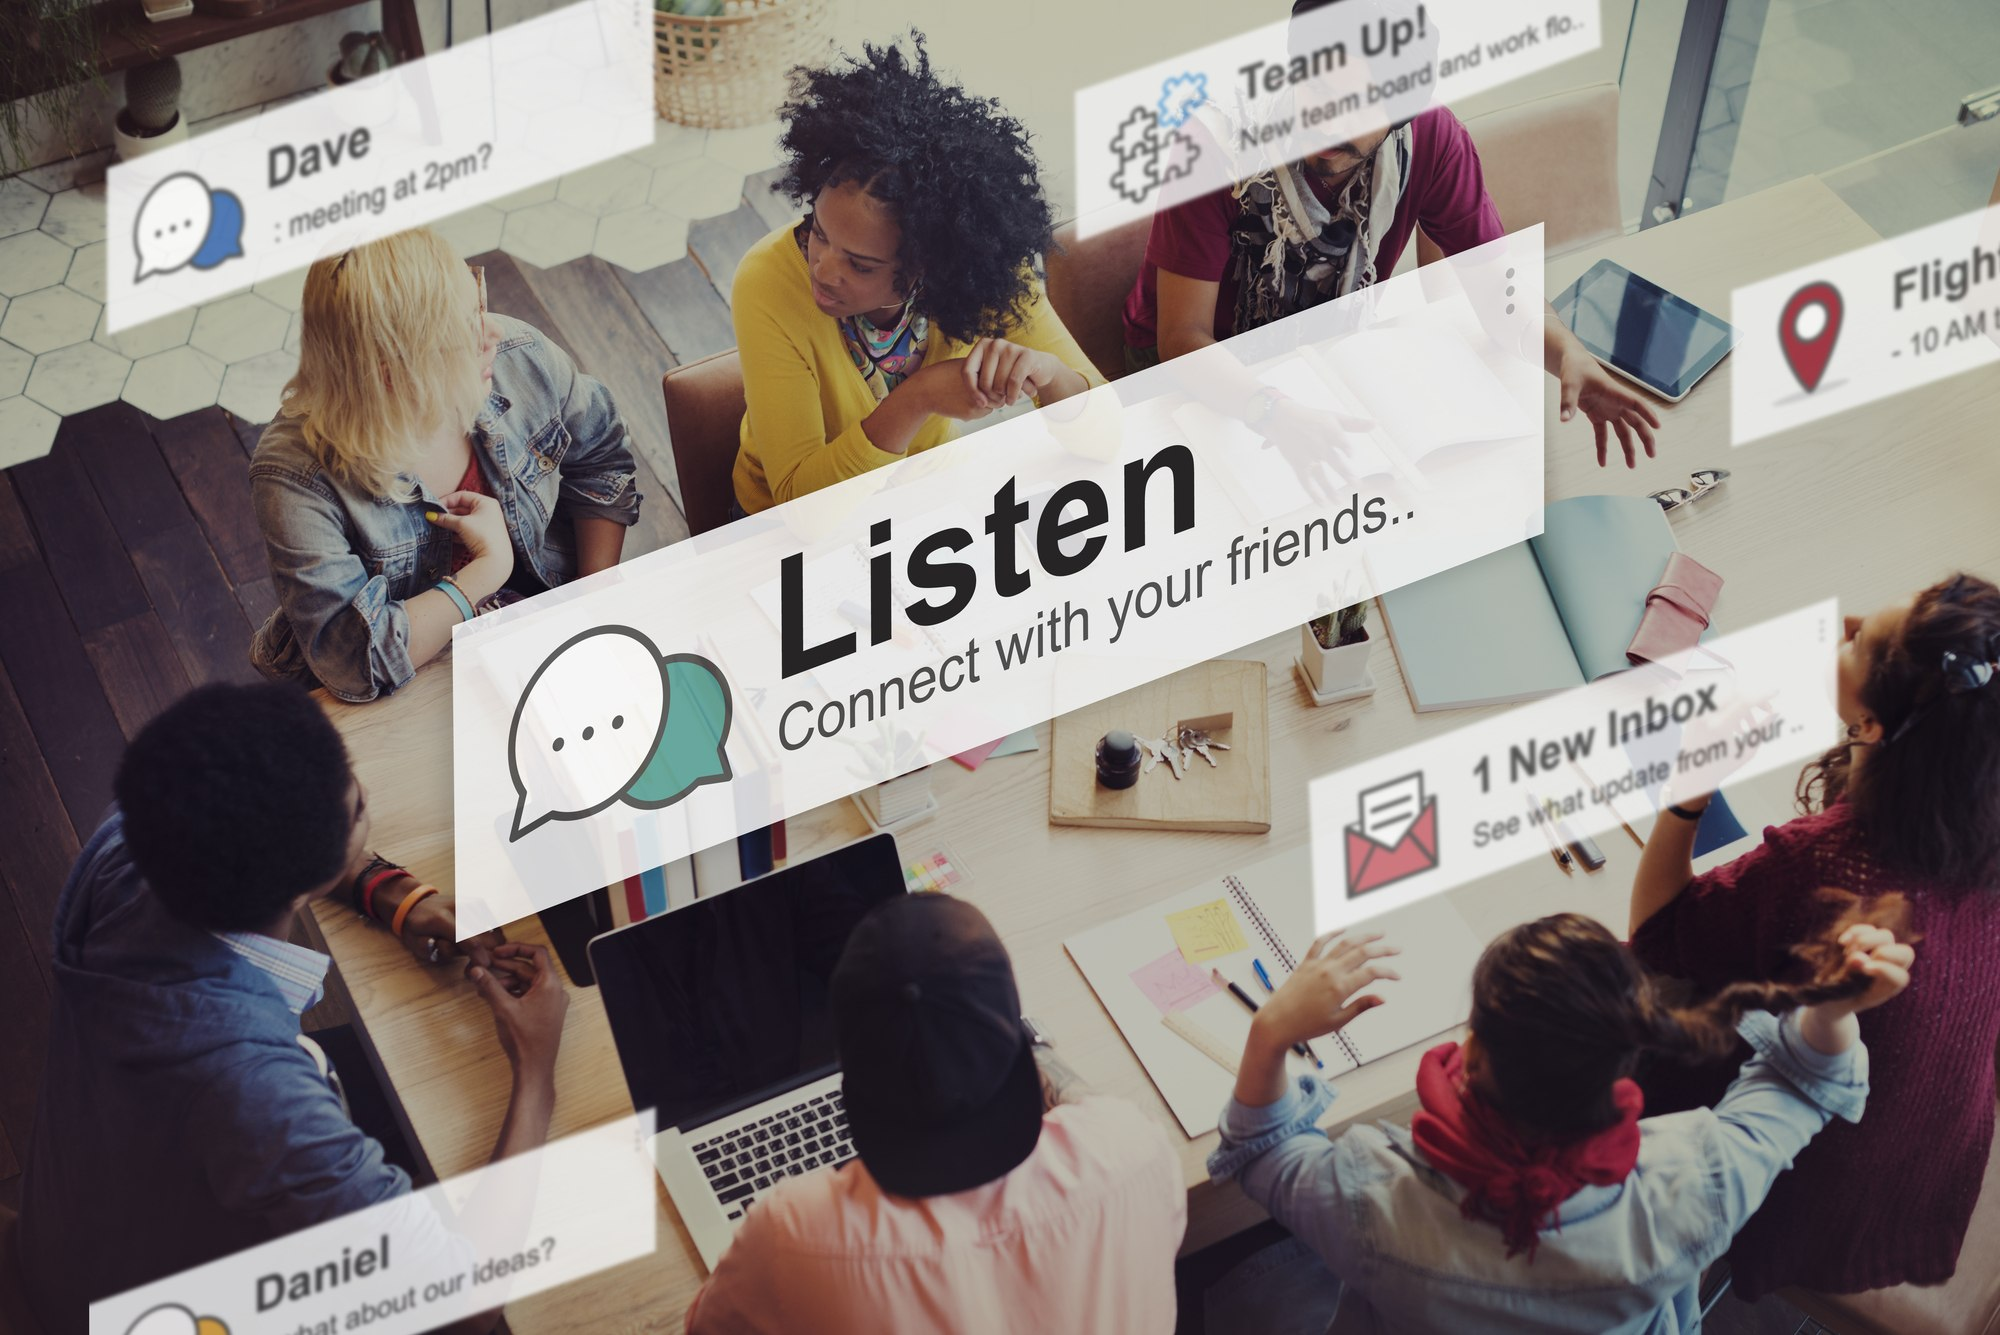 Social Media: 3 Tips To Better Connect With Your Customers